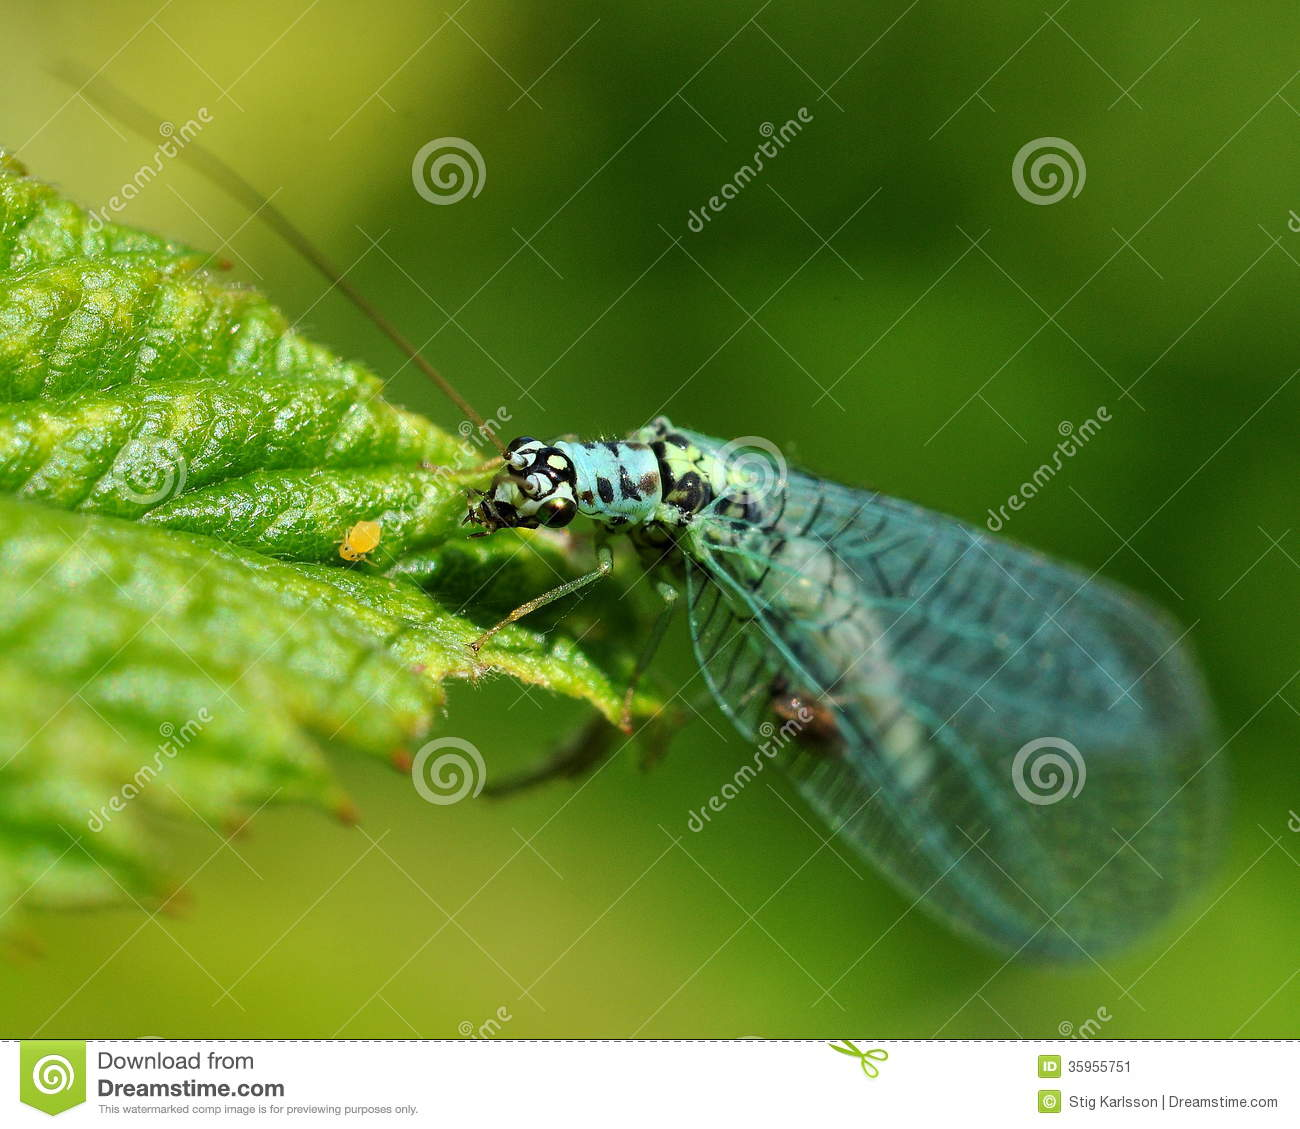 Day Fly Ephemeroptera In The Green Stock Image.